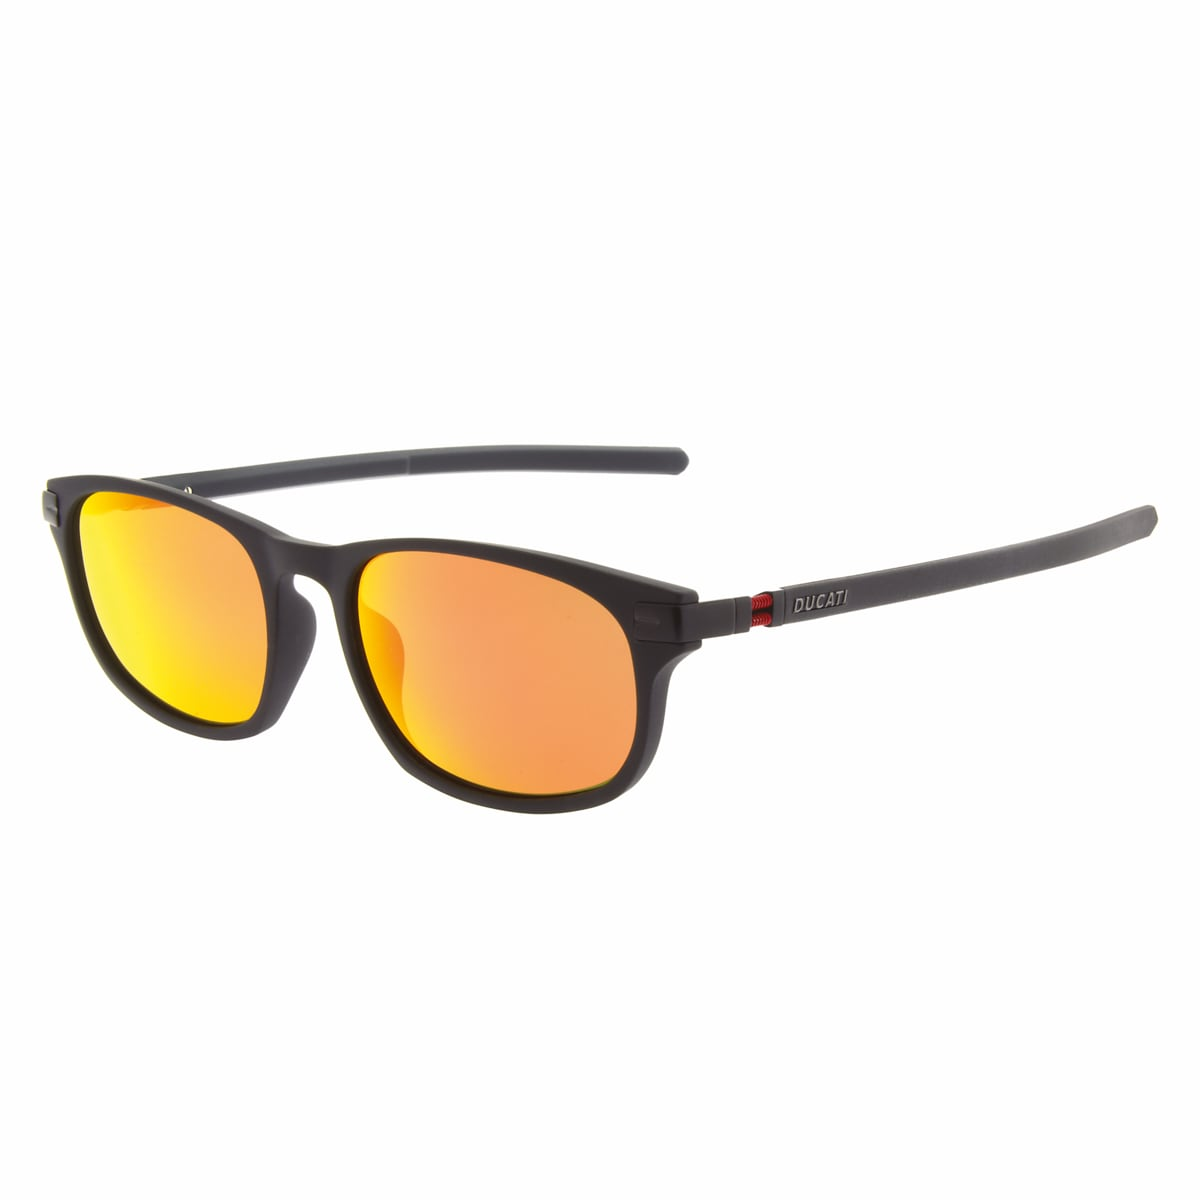 ab6b85396f Miami - Sunglasses